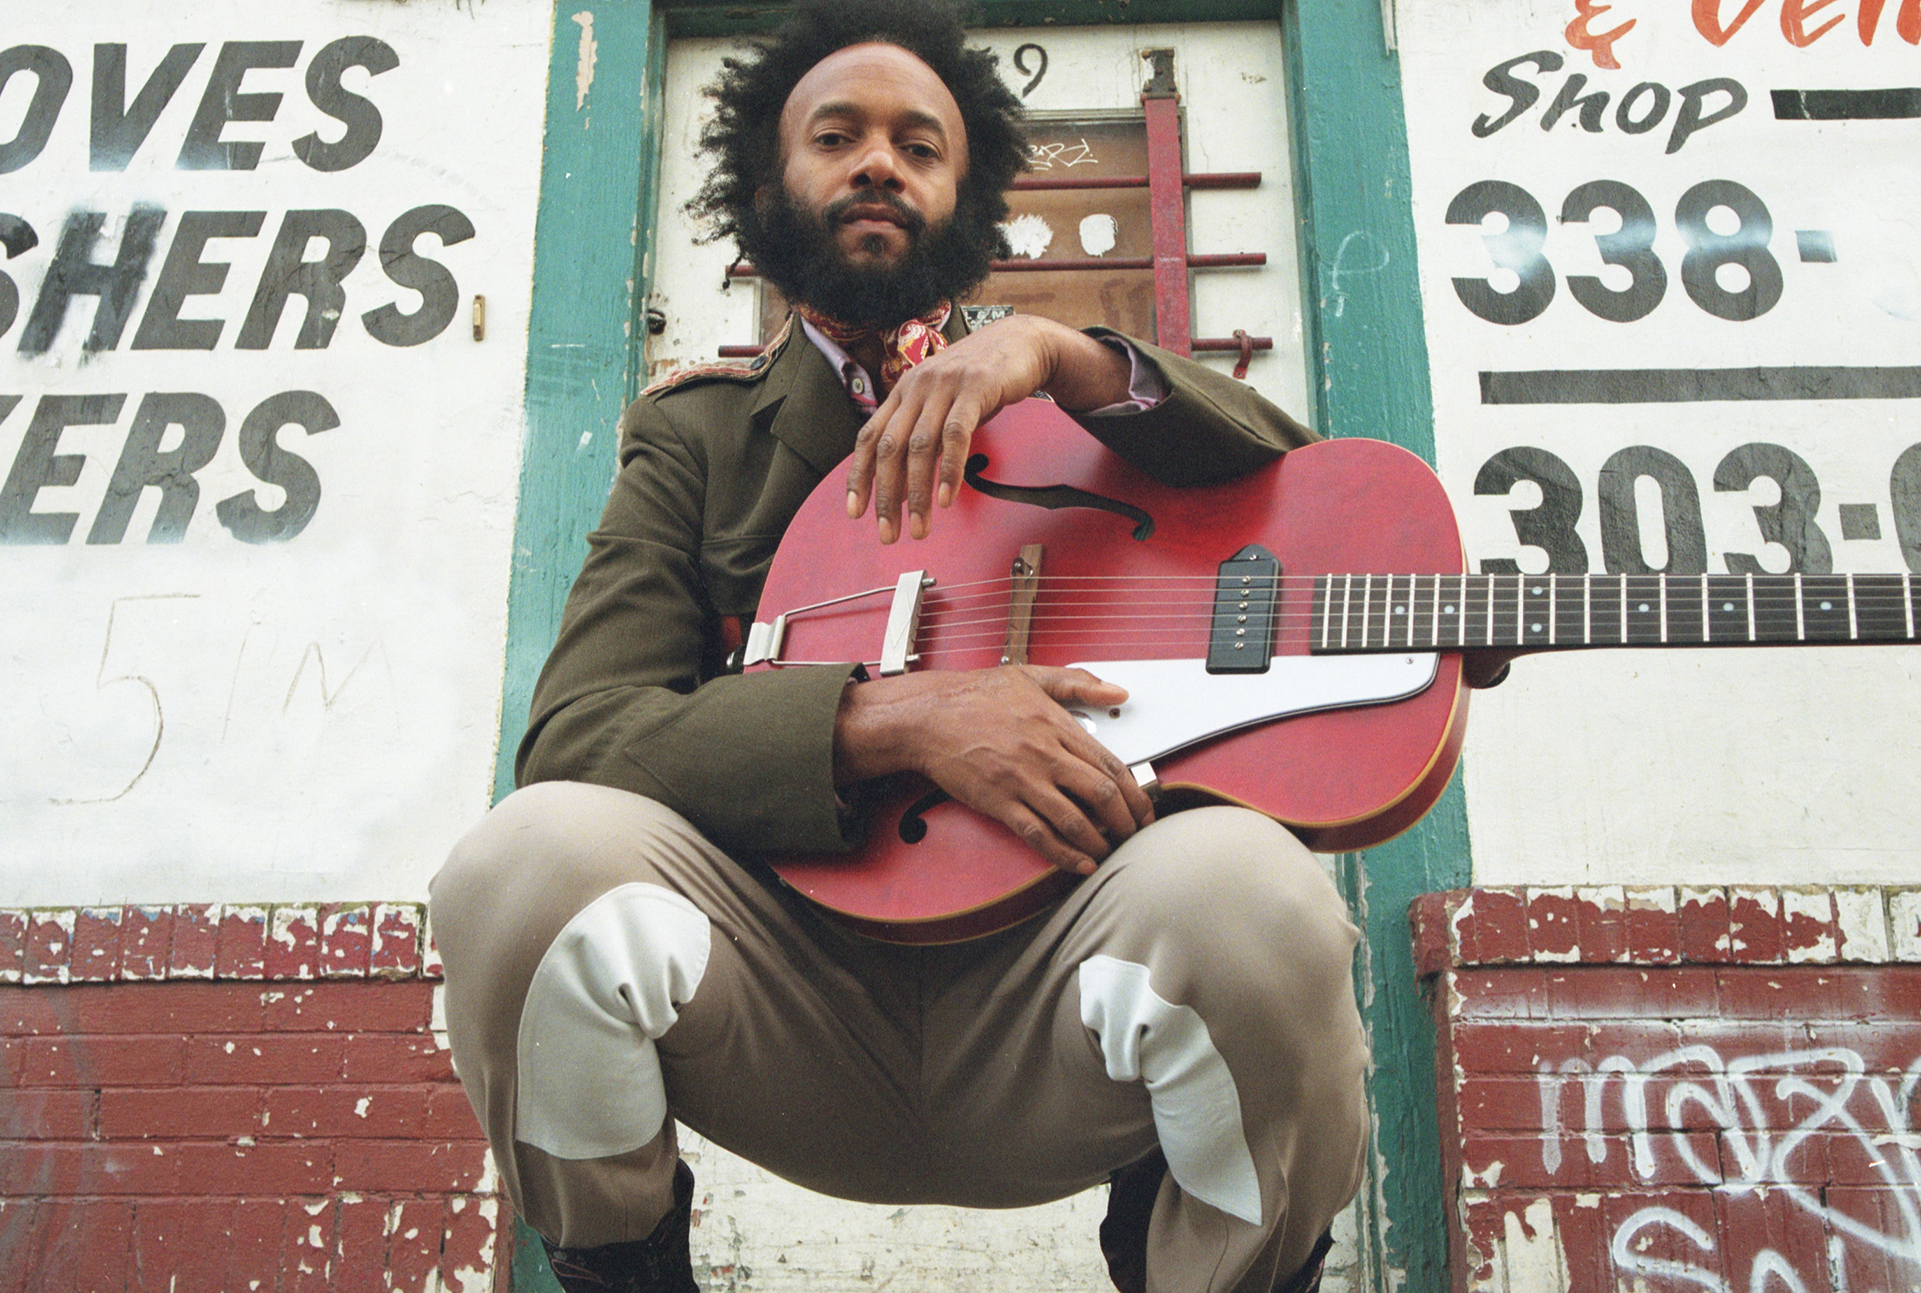 Oakland's Grammy-winning Fantastic Negrito launches a summer tour and new album Please Don't Be Dead